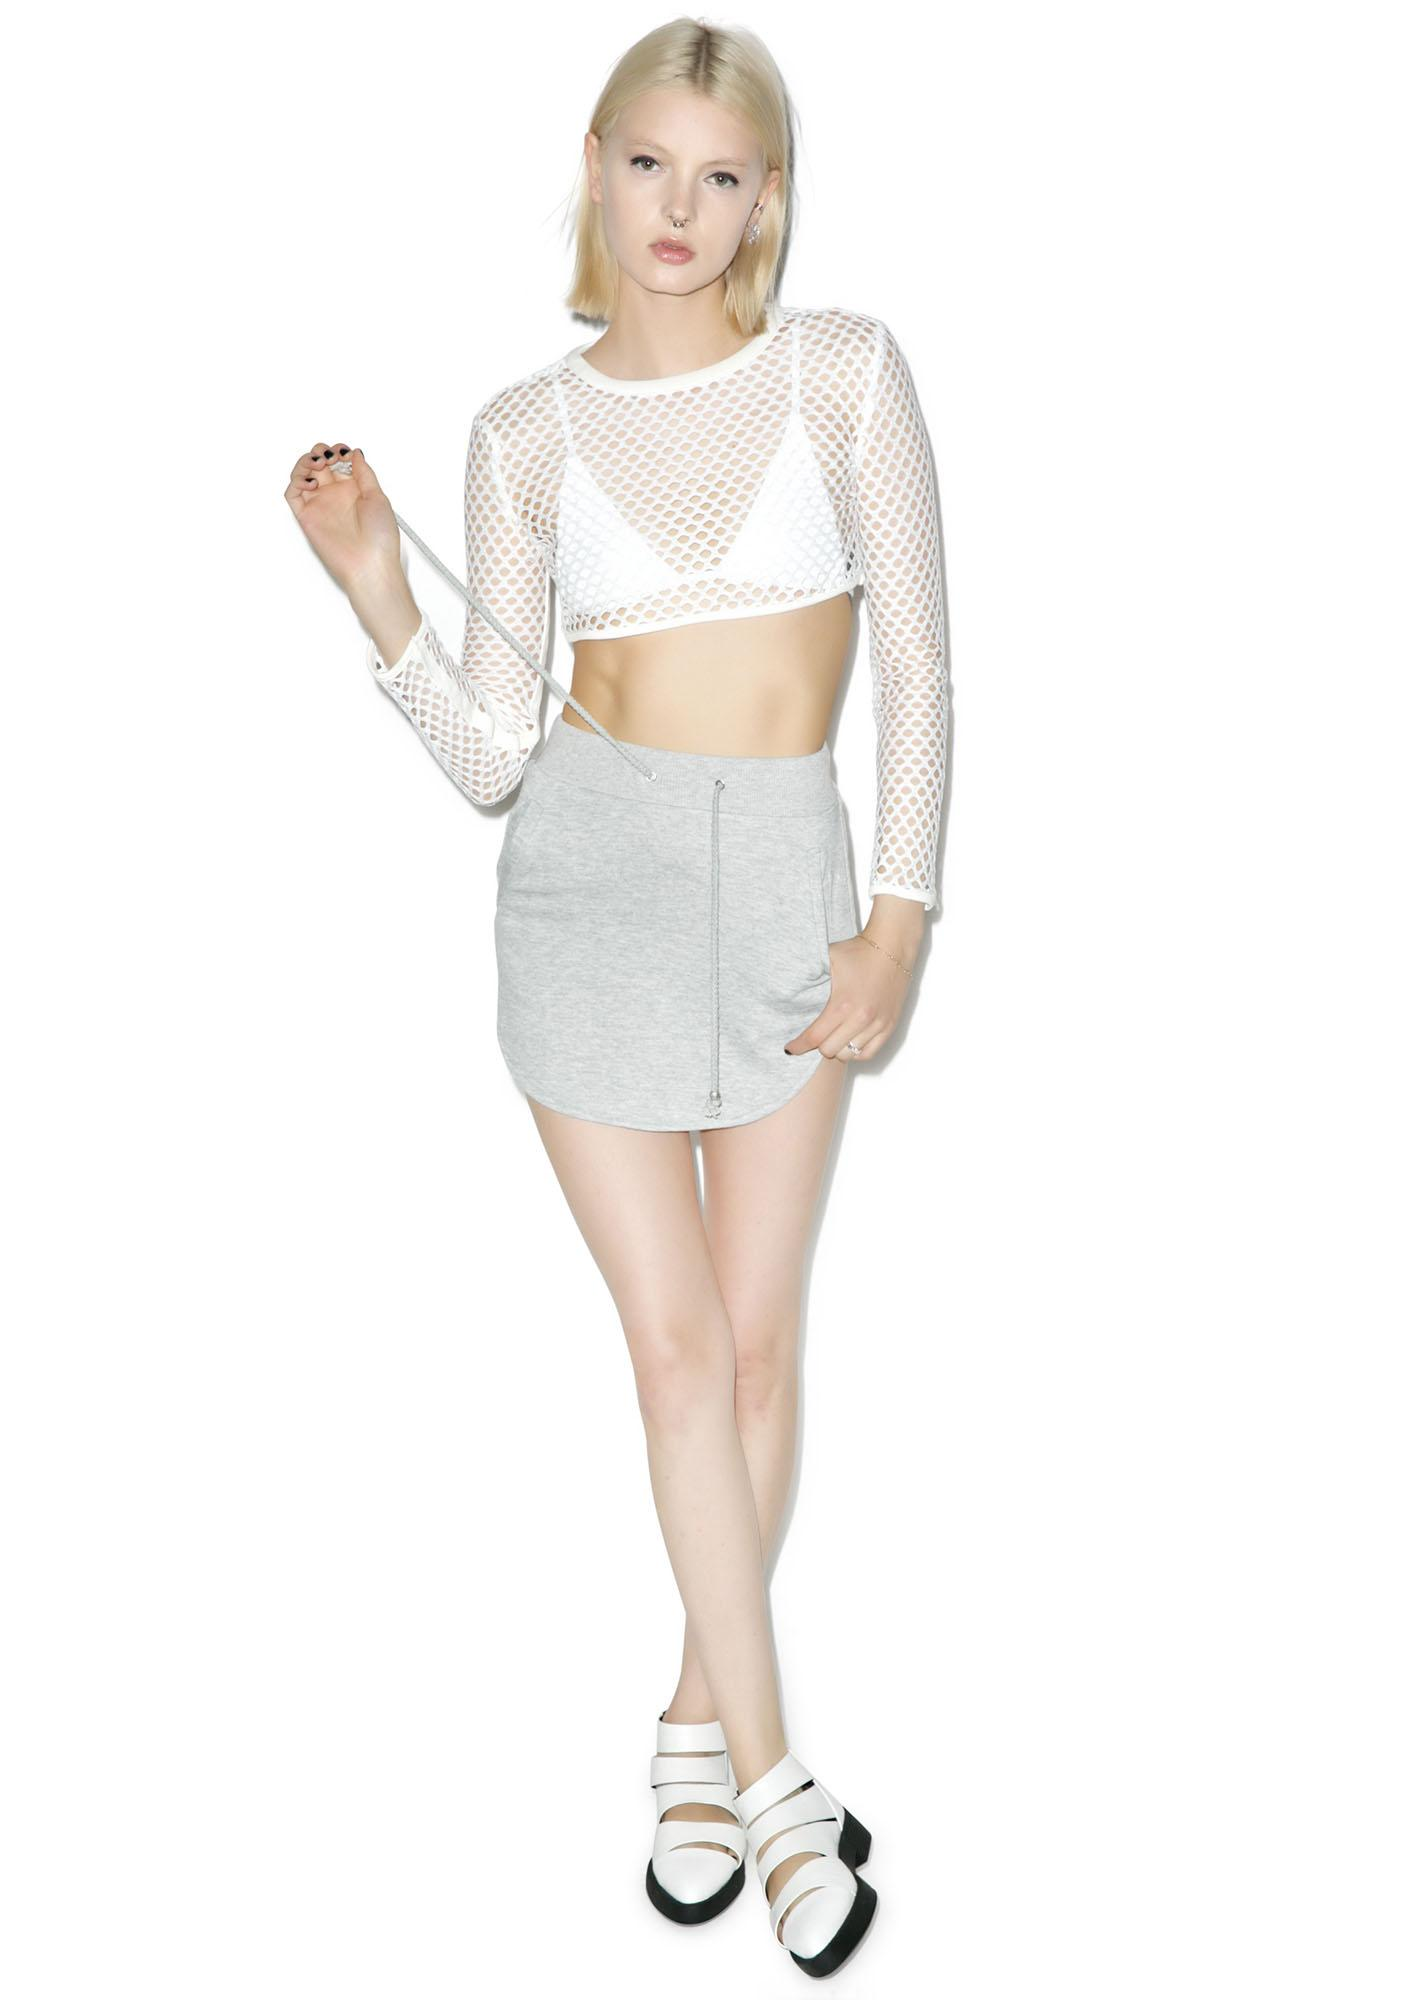 Nightwalker Anarchy Mini Skirt